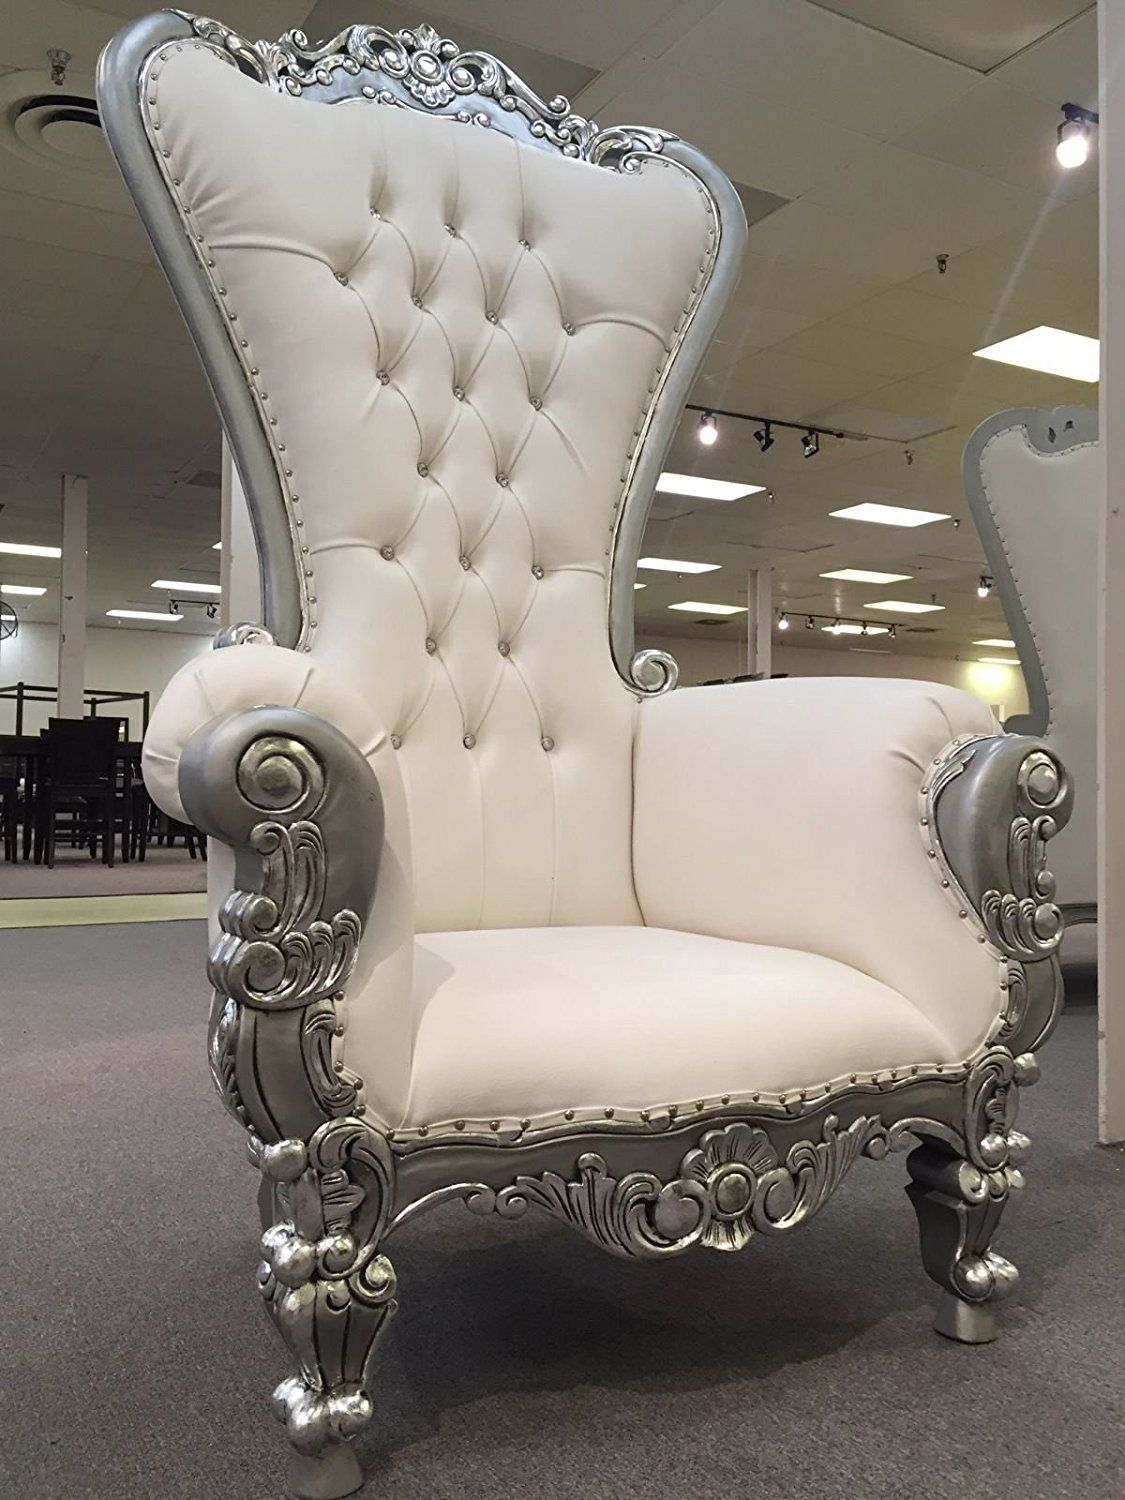 6 ft tall throne chair french baroque wedding